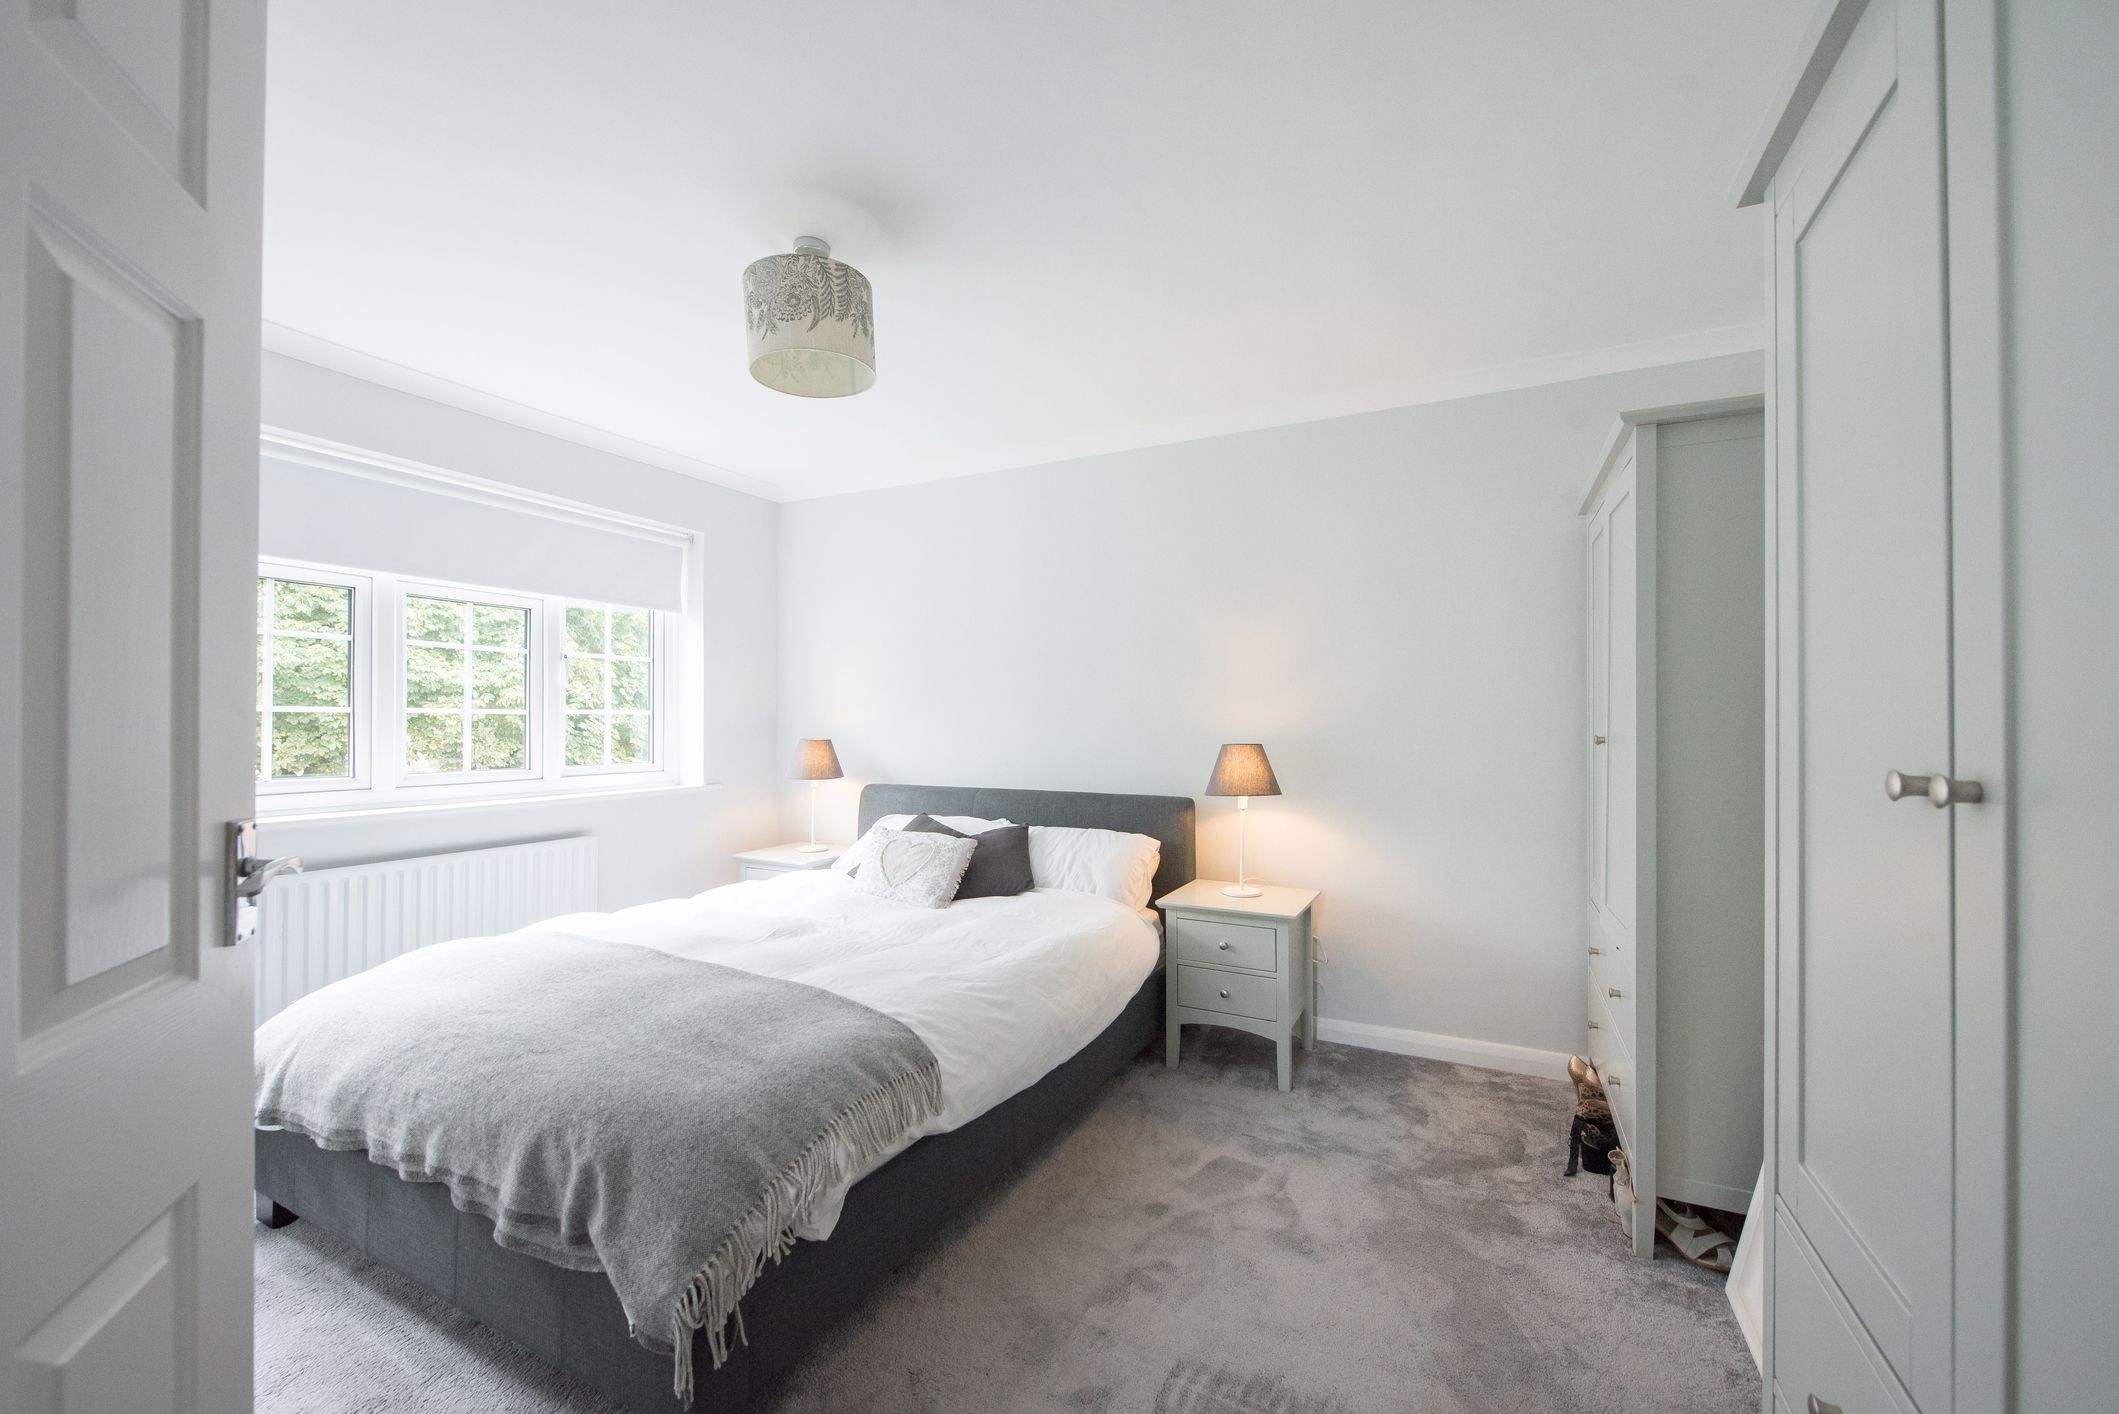 9 Serene Gray Bedroom Ideas - Decorating with Gray